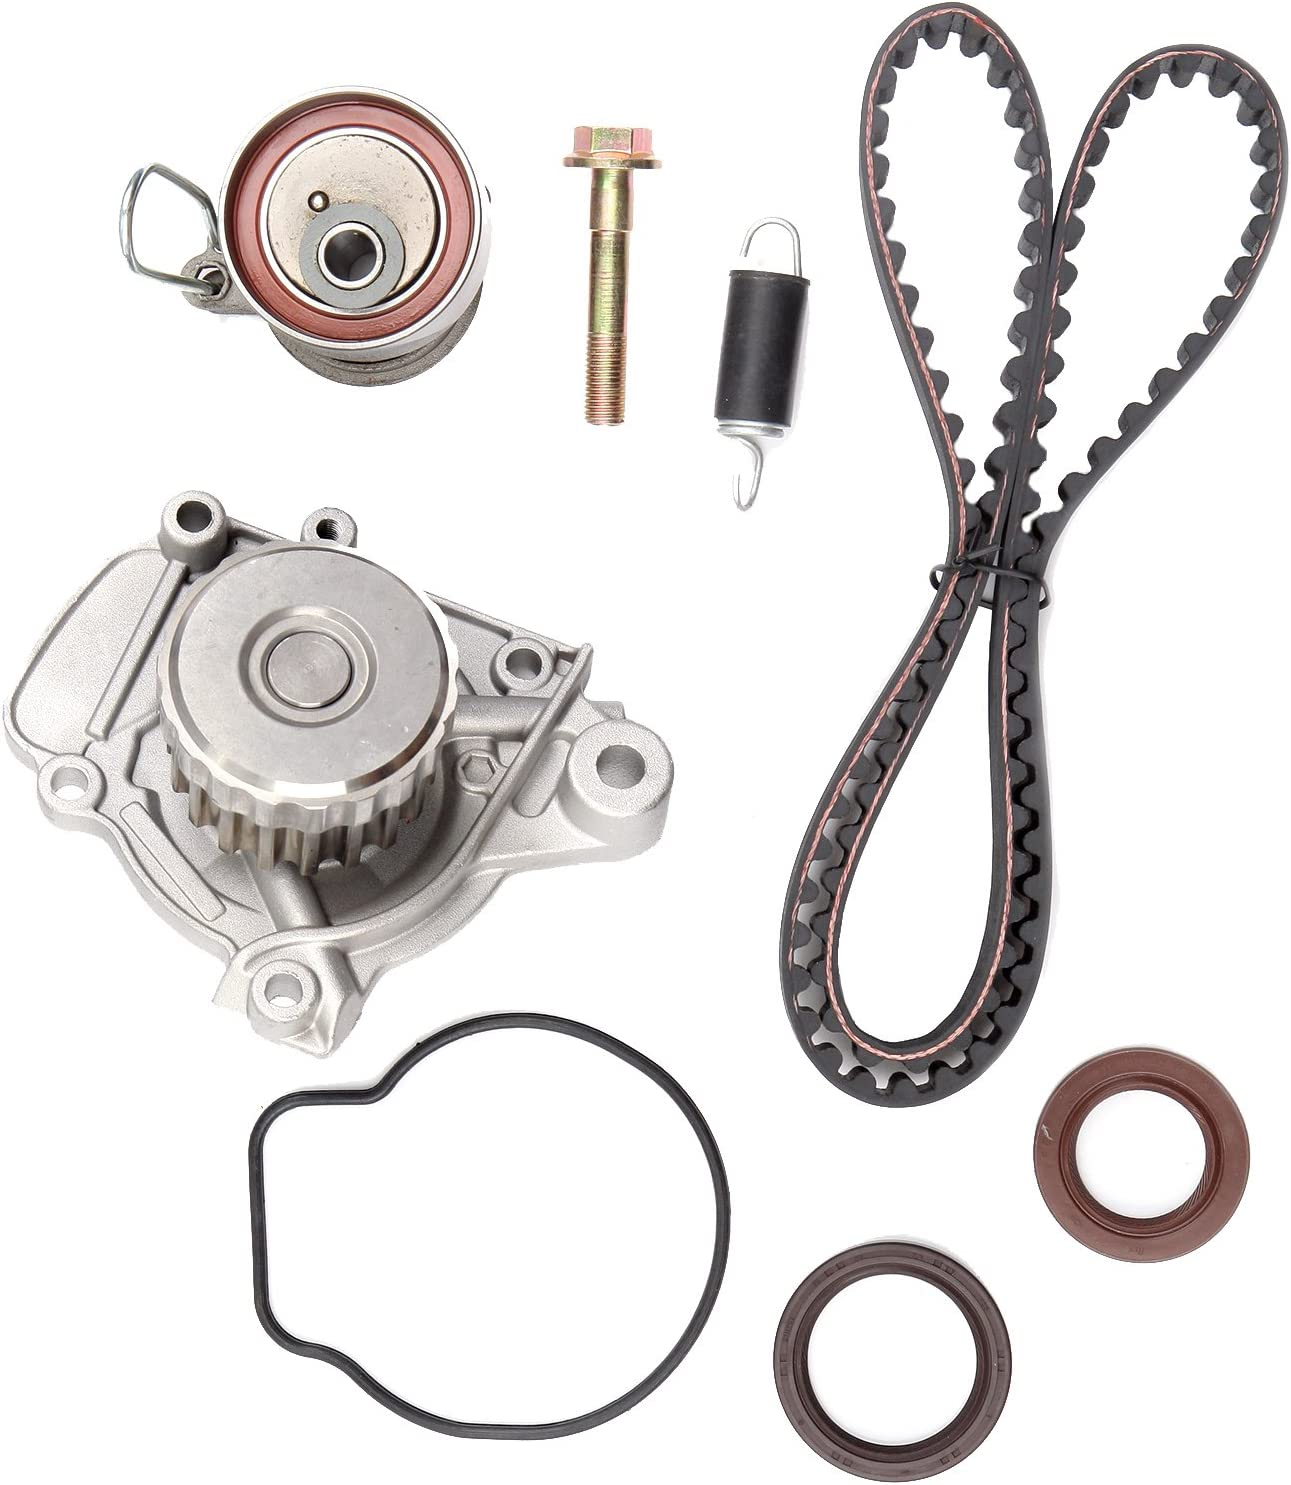 CCIYU Timing Belt Water Pump Kits Acura Fits for [Alternative dealer] 2001-2005 E Free shipping New